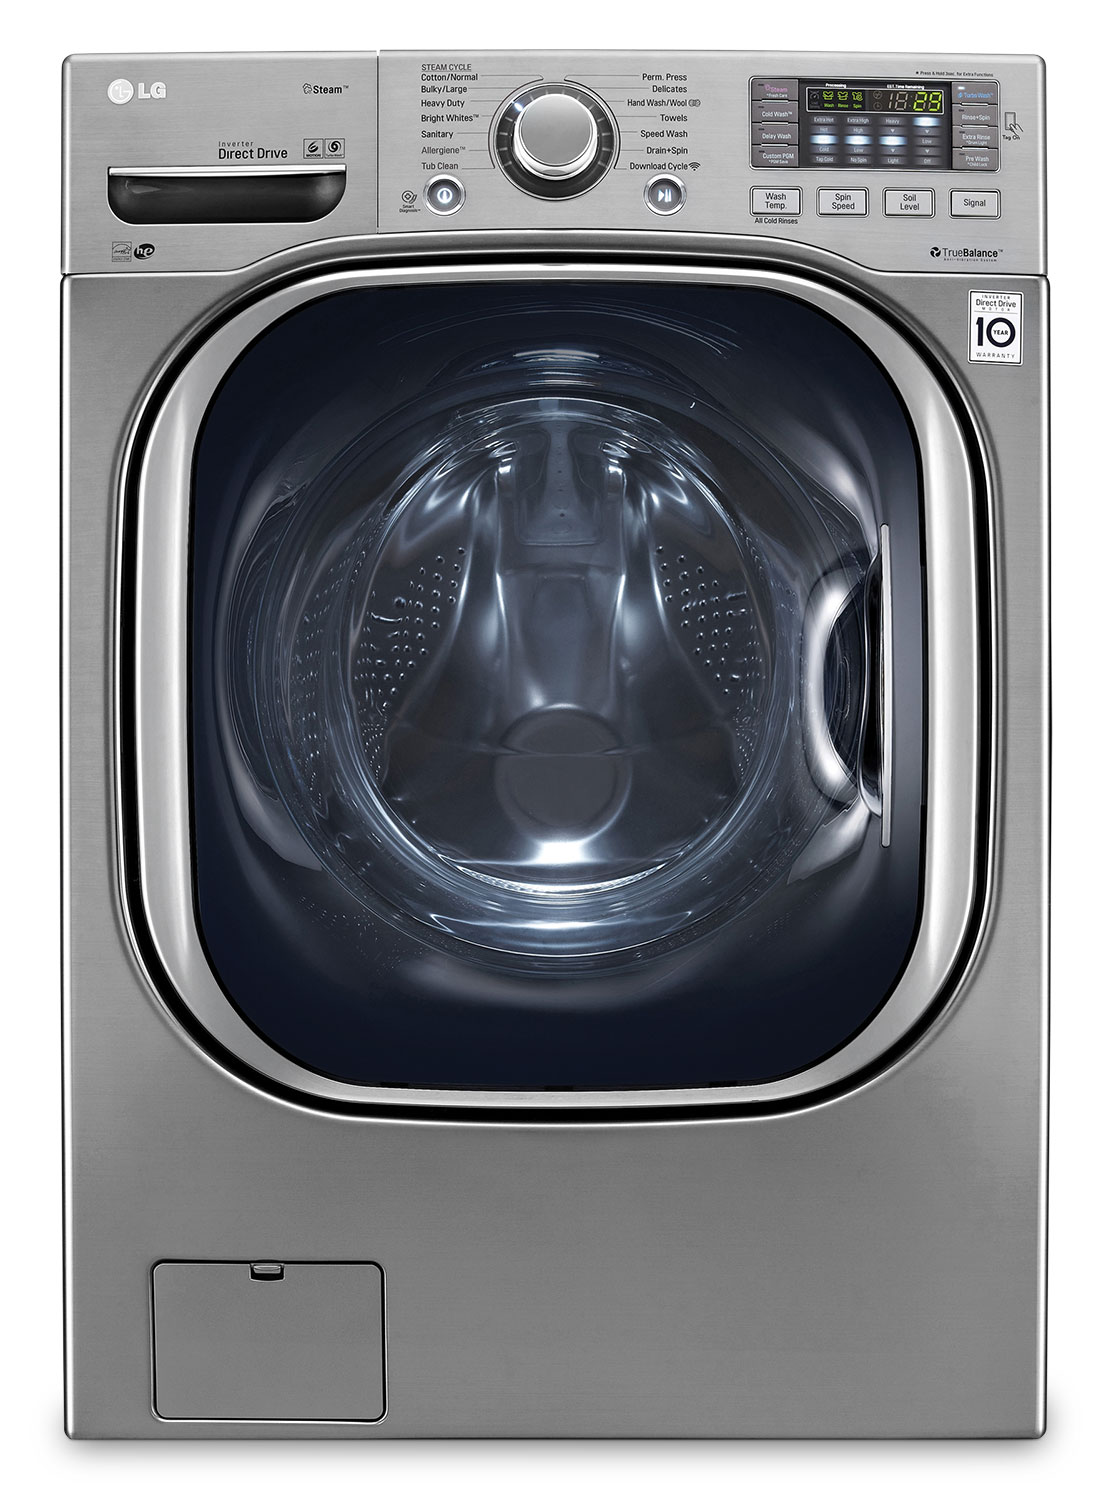 LG 5.2 Cu. Ft. Front-Load Washer – Graphite Steel